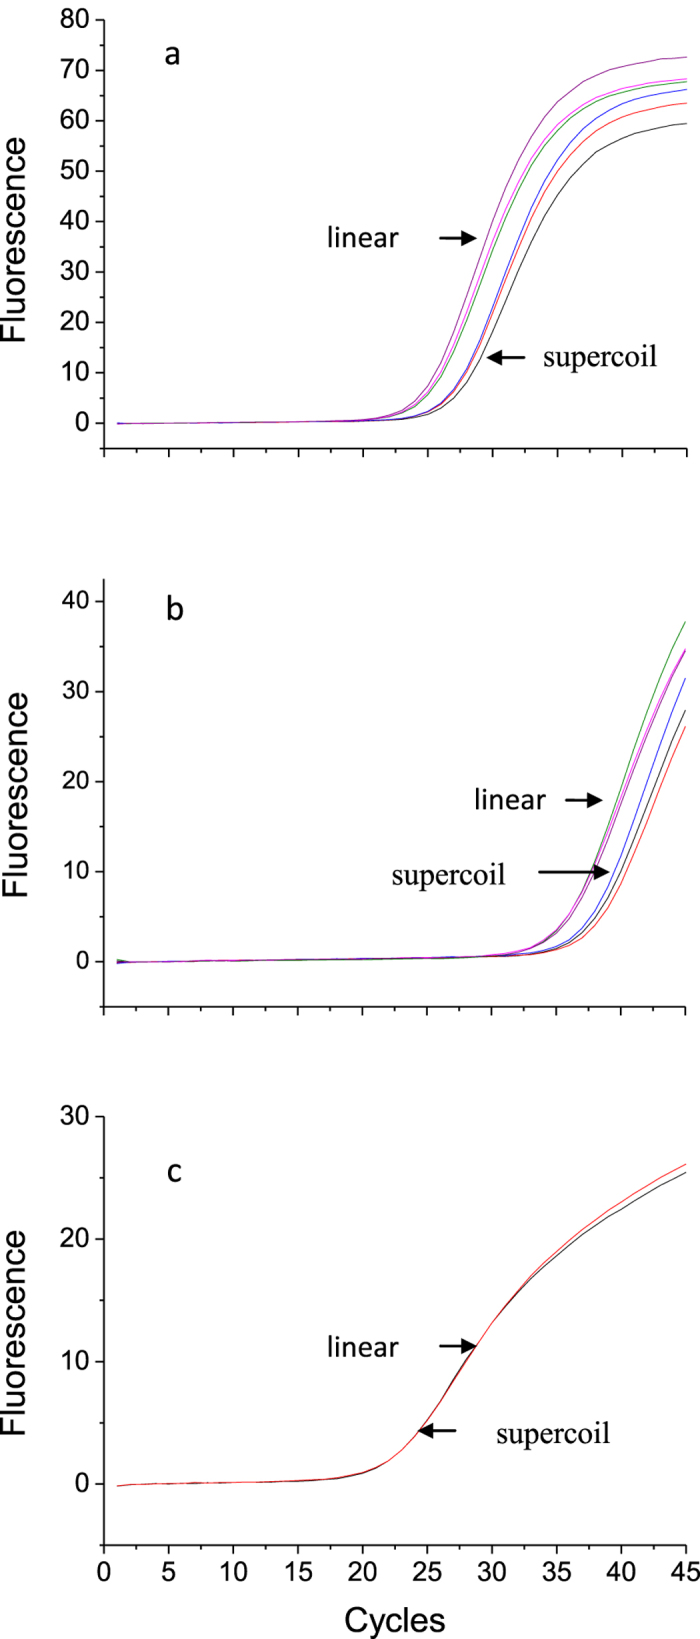 PCR amplification curves of linearized and supercoil pBR322 plasmid with ( a ) Gene Expression master mix (GE), ( b ) Environment master mix (EN) and ( c ) 16S DNA Free master mix (DF).